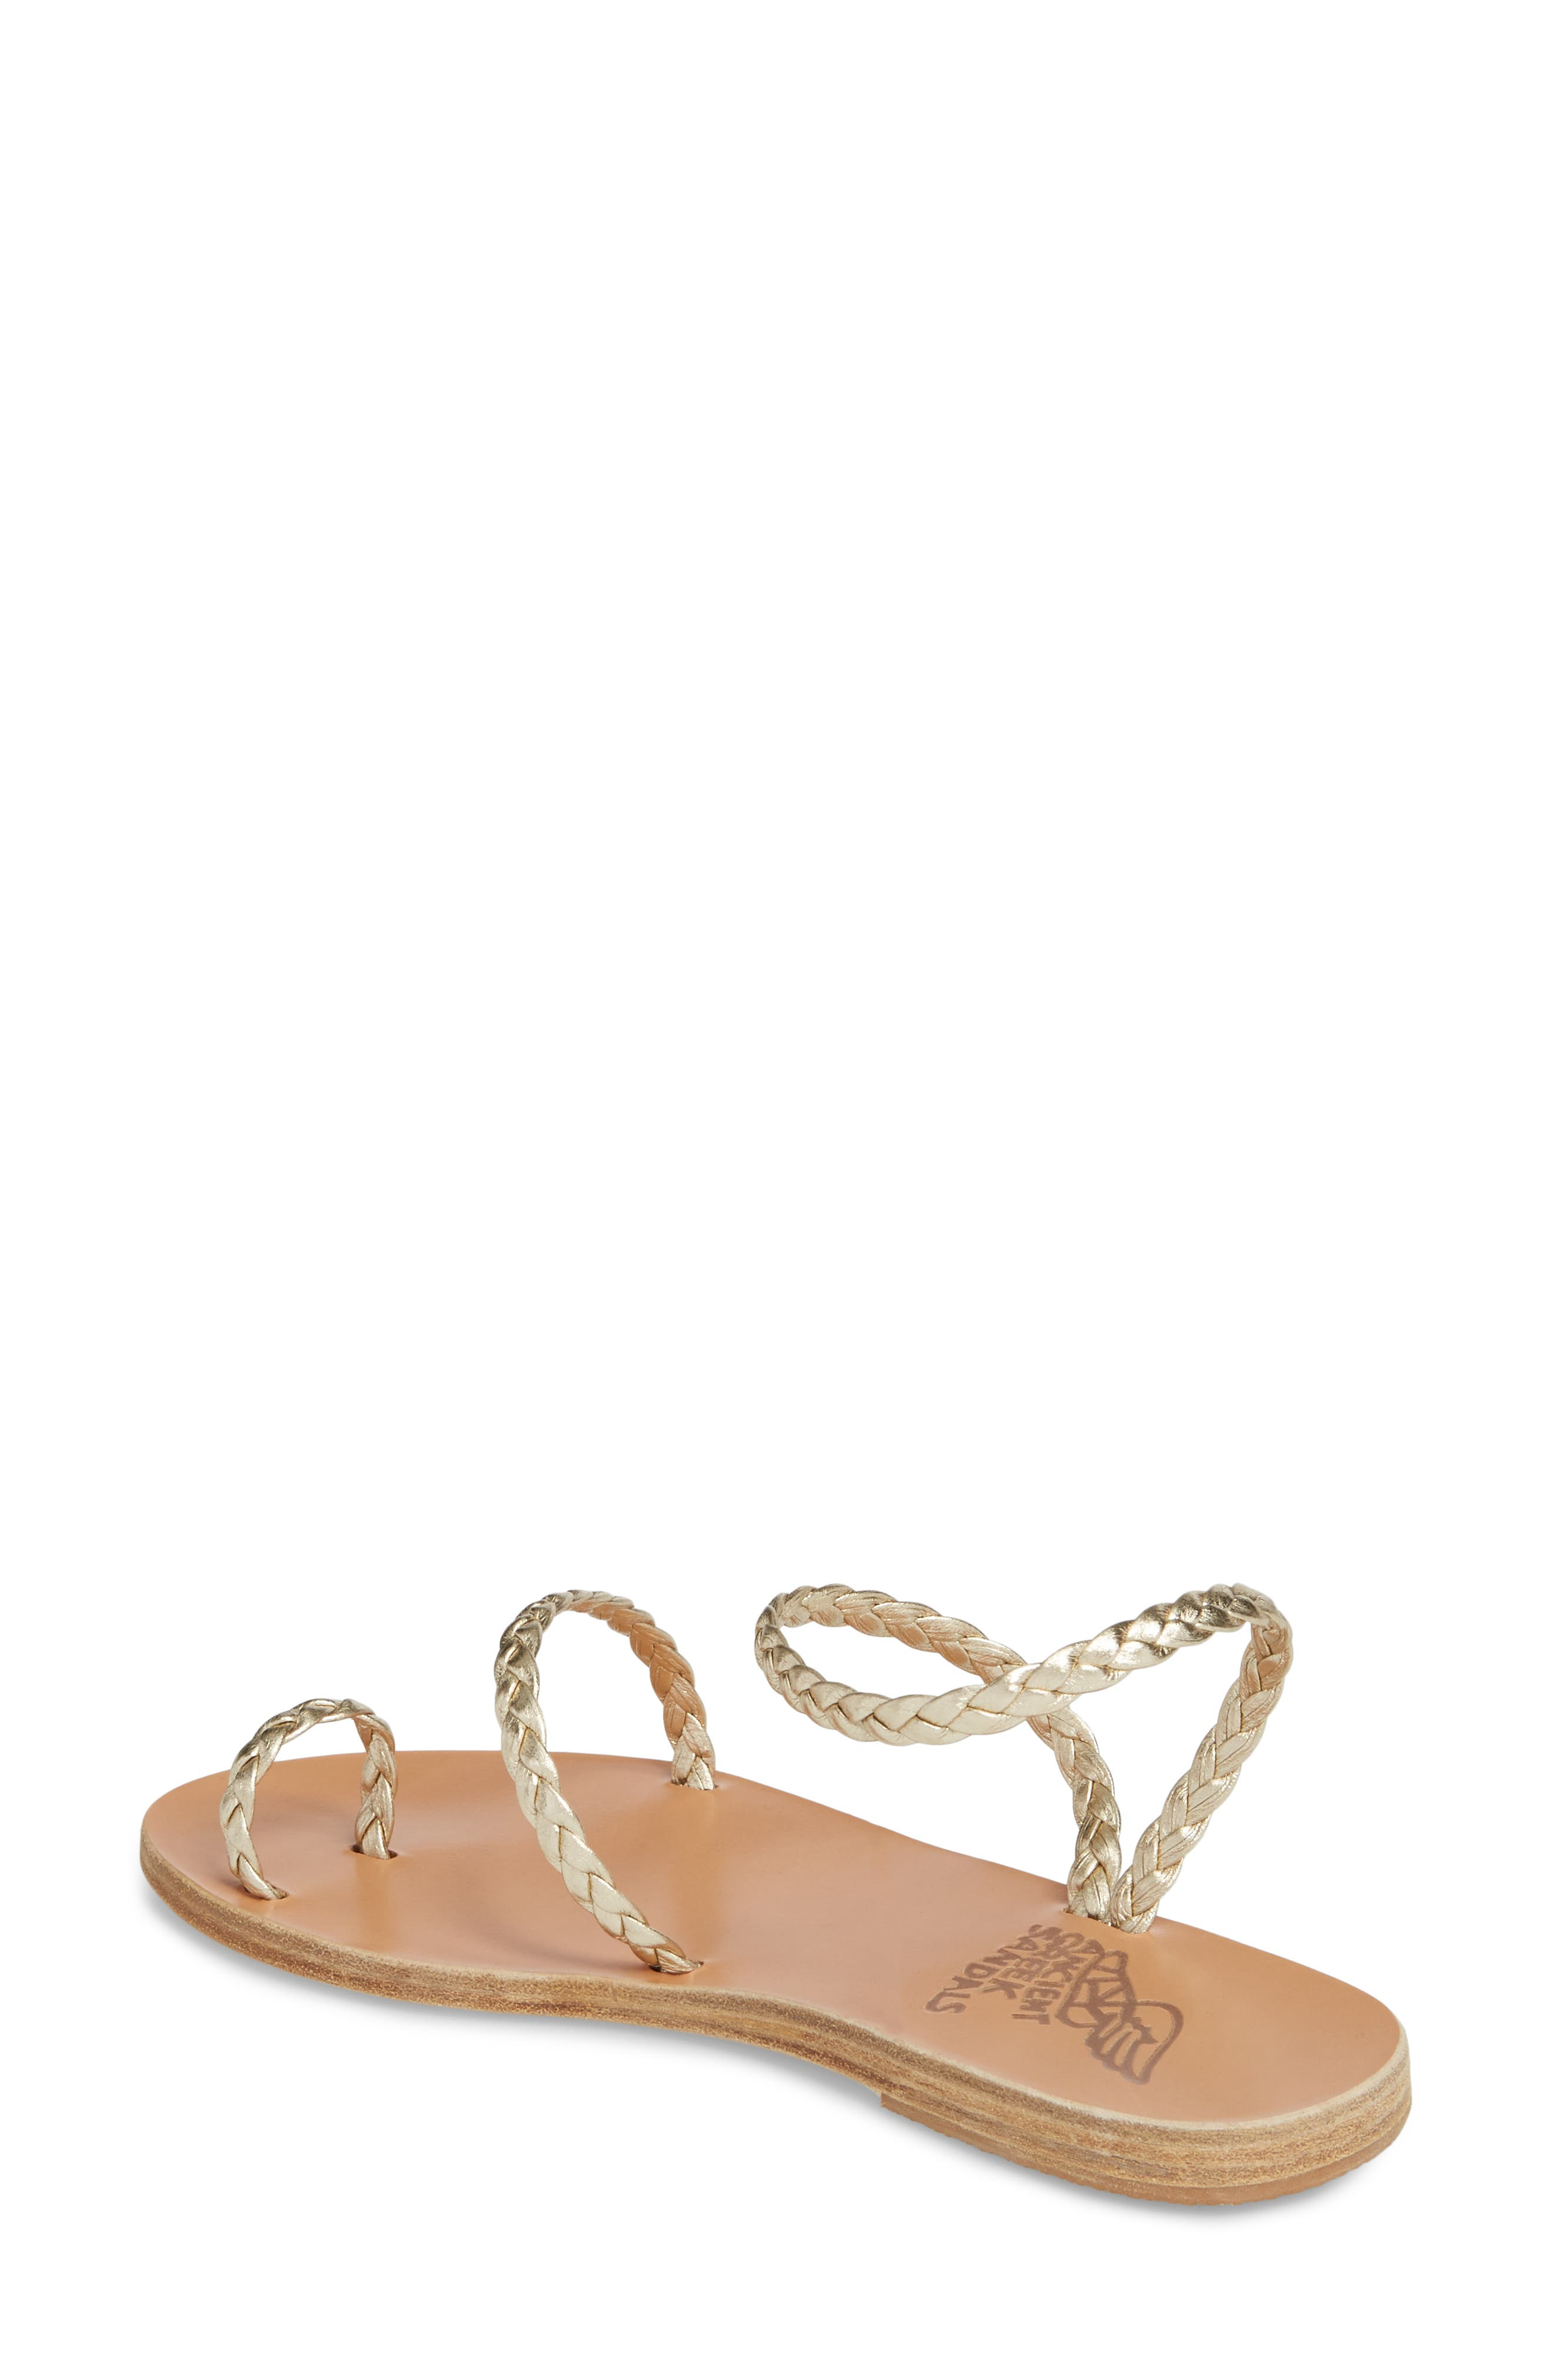 Eleftheria Sandal,                             Alternate thumbnail 2, color,                             Platinum